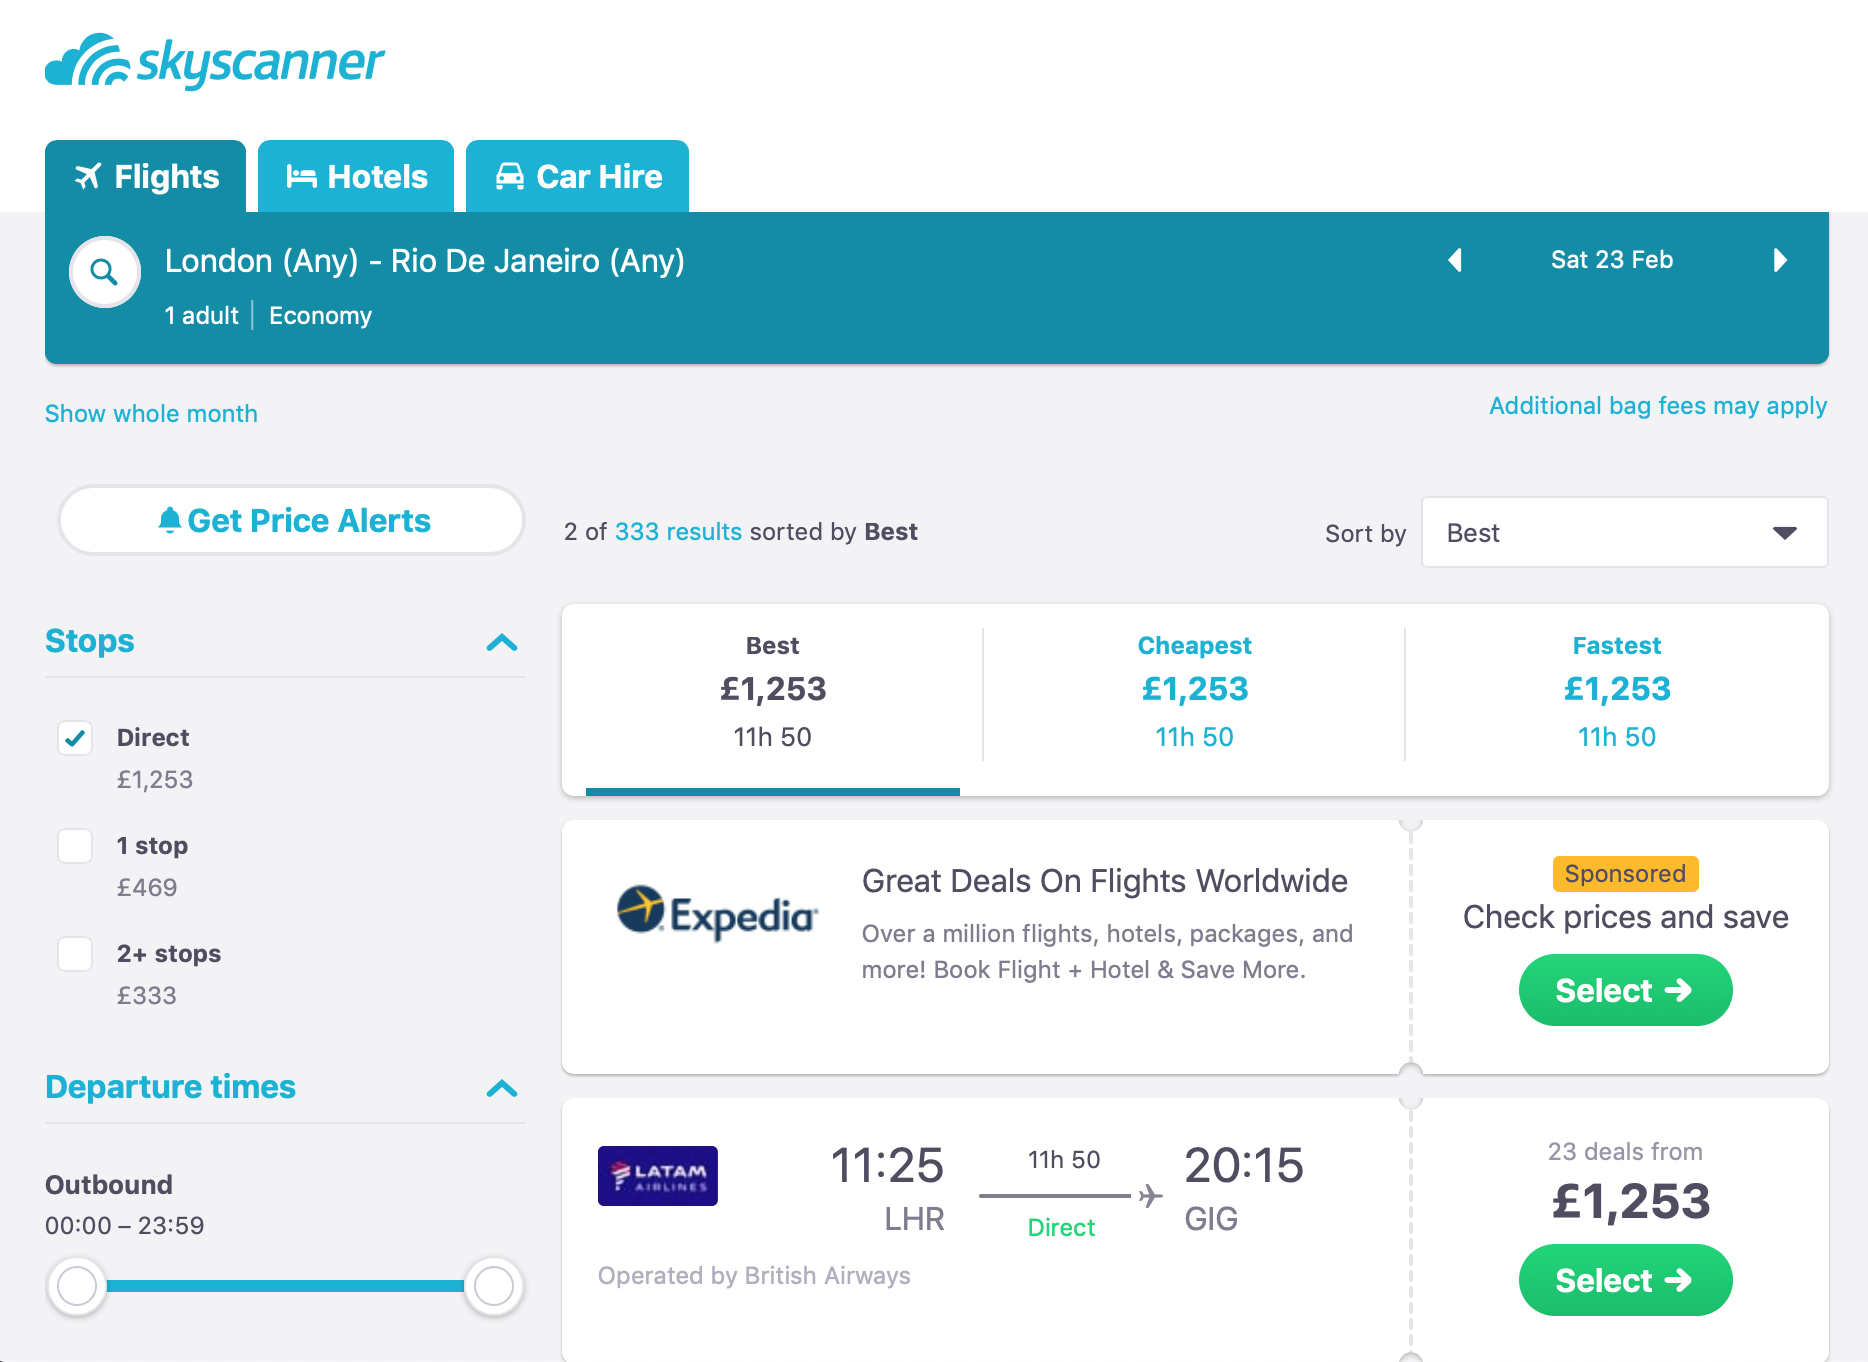 The cheapest flight on 23td February is £1253